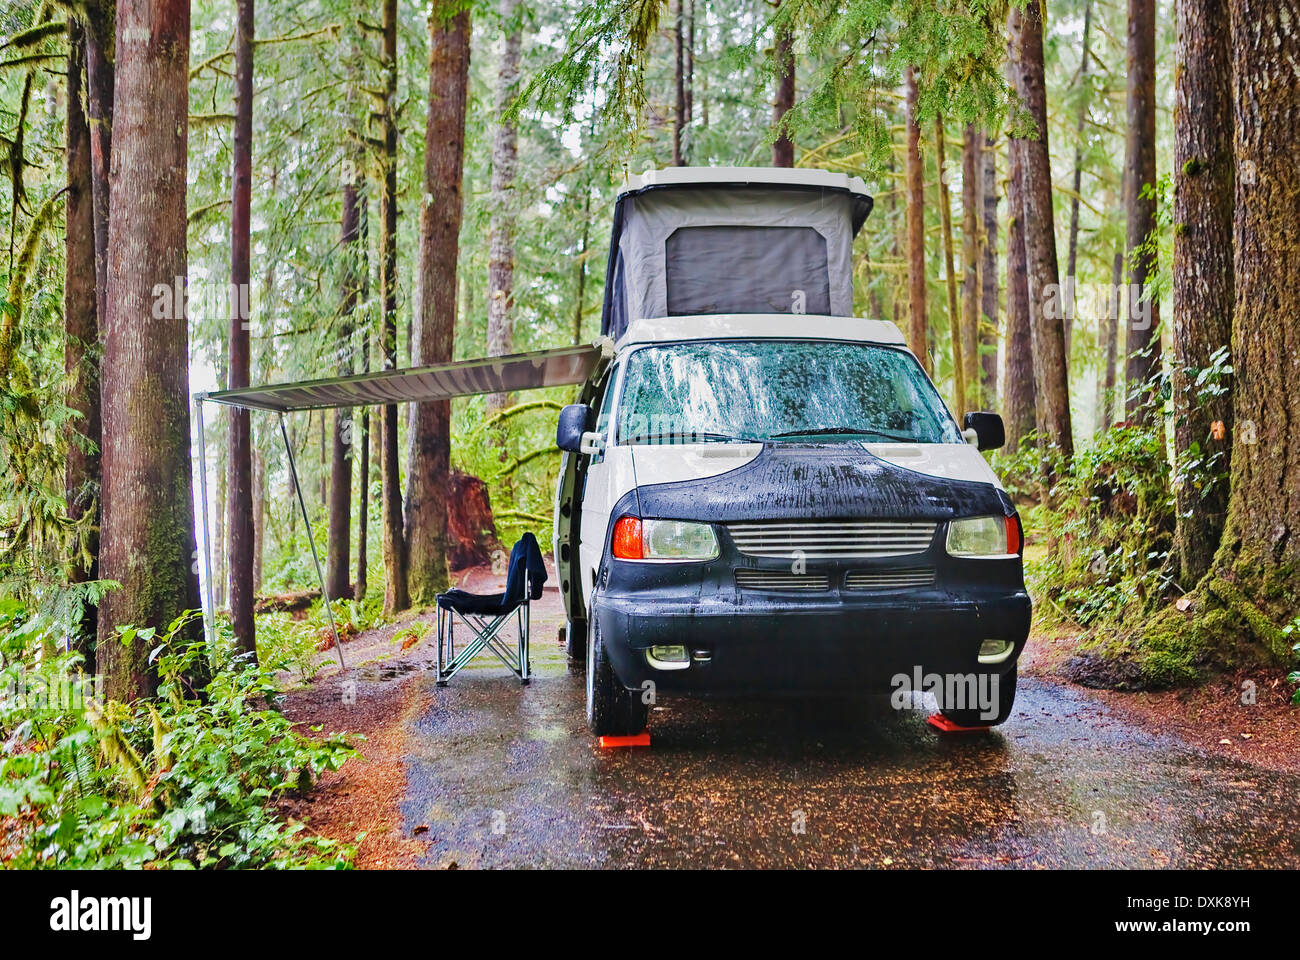 Camper van with awning parked at campsite - Stock Image